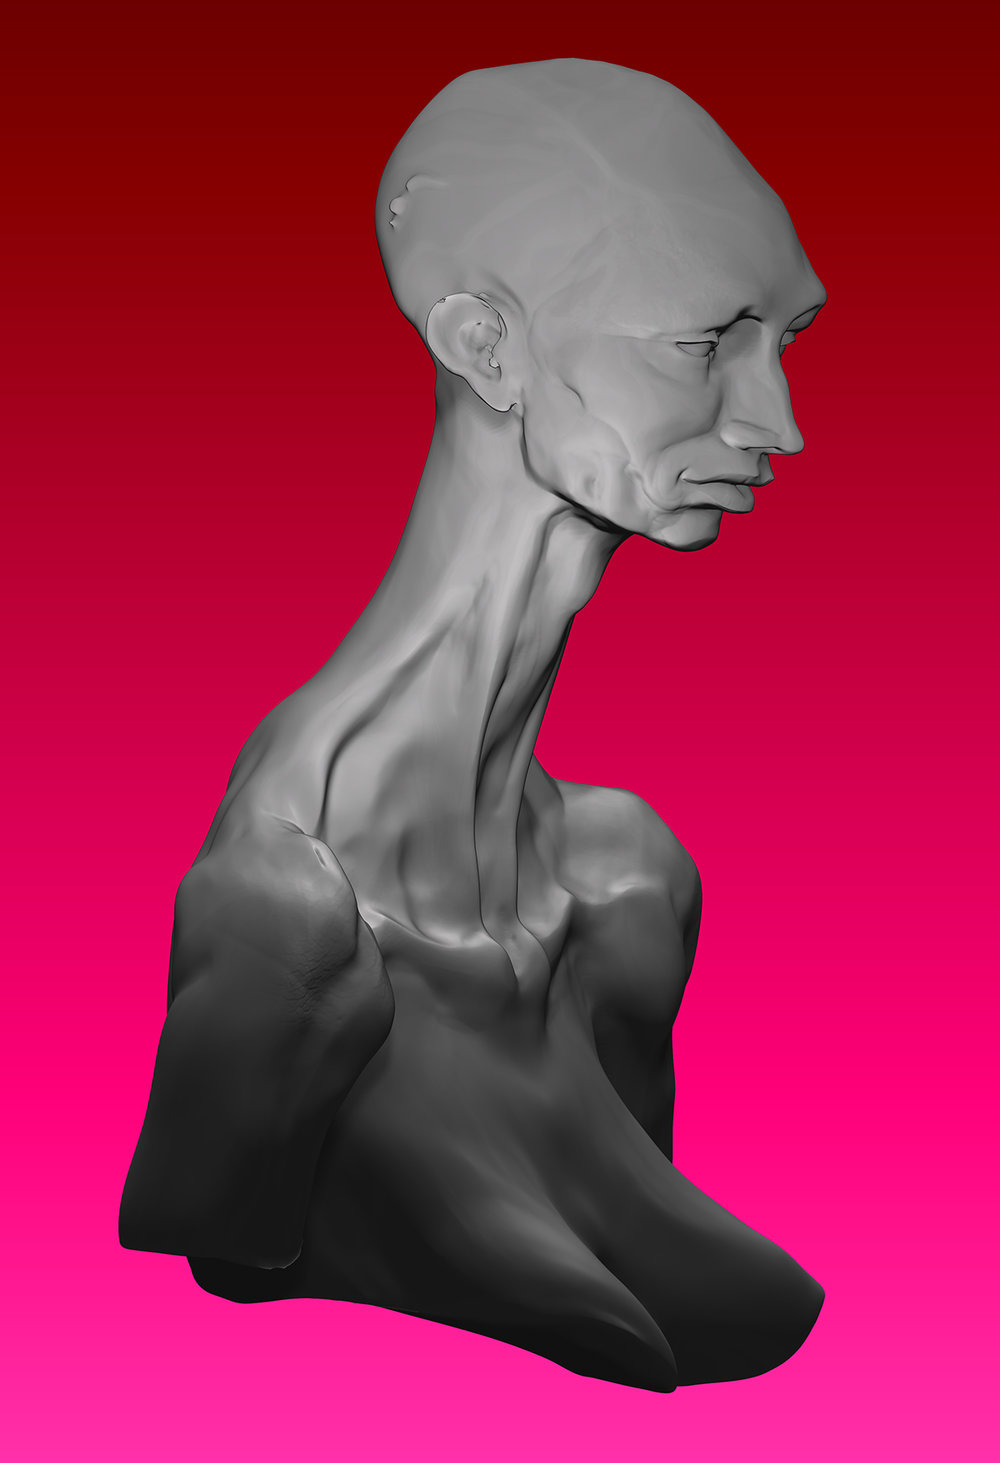 Max+Brazier-Jones+concept+art+zbrush+portrait+sculpture.jpeg